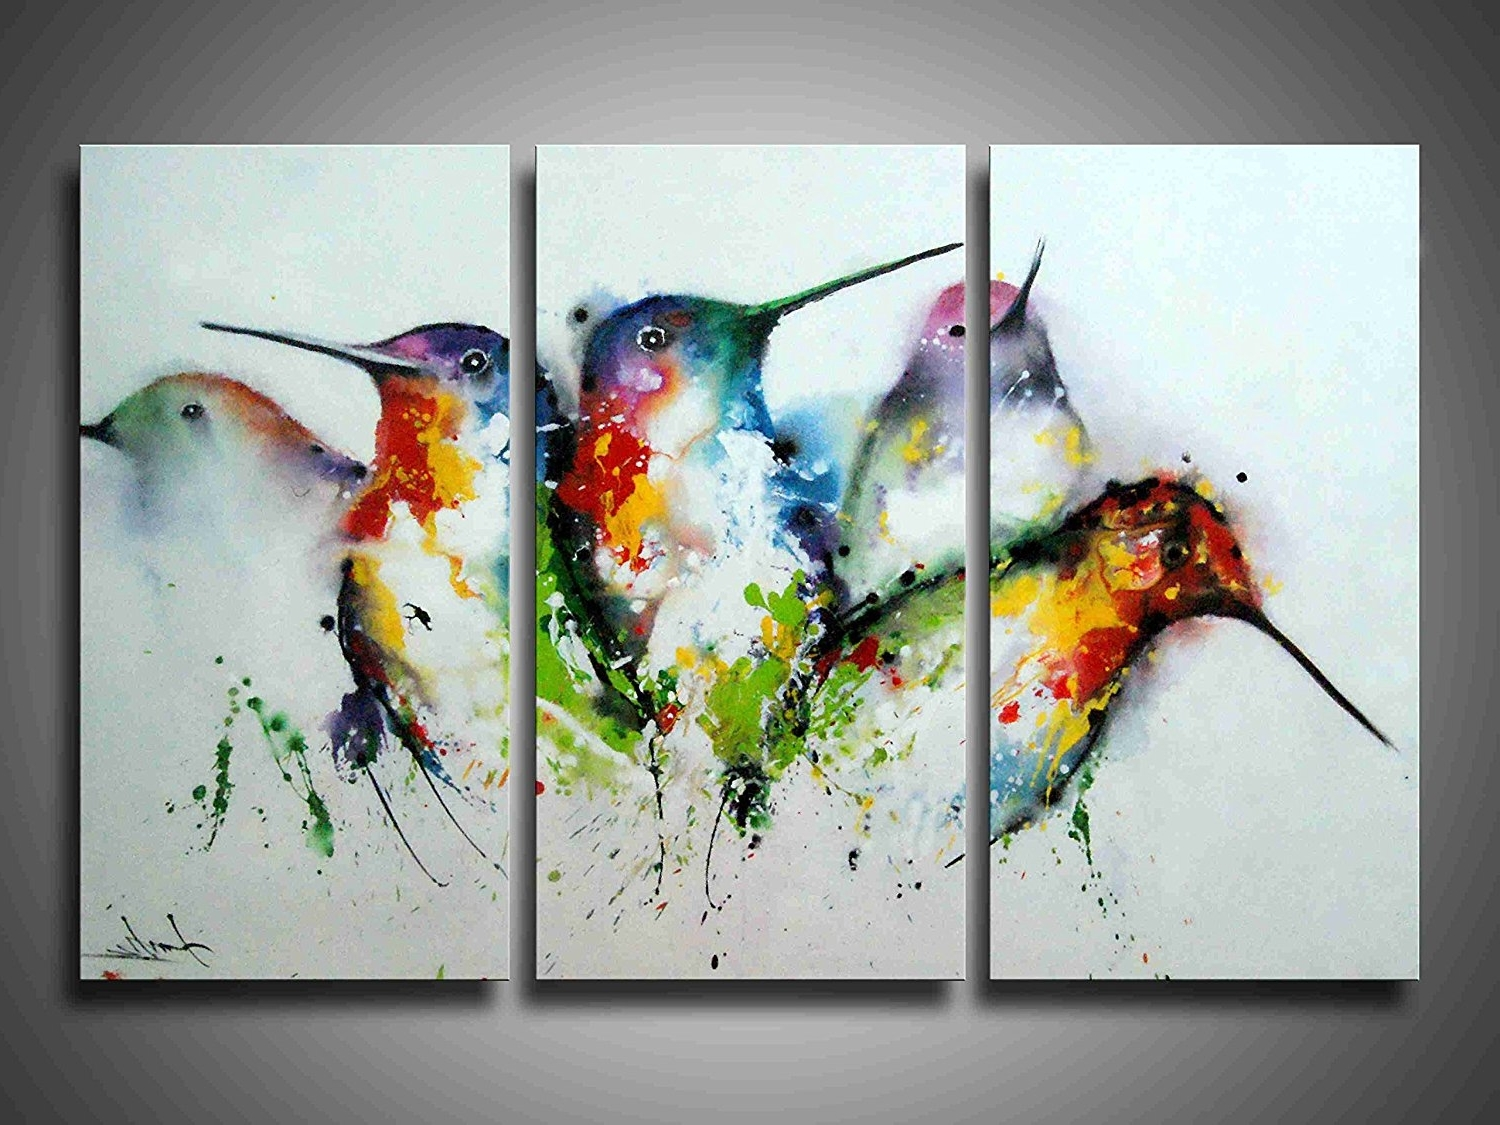 2018 3 Piece Framed Wall Art Bird : Andrews Living Arts – Affordable 3 Pertaining To 3 Piece Canvas Wall Art (View 2 of 20)